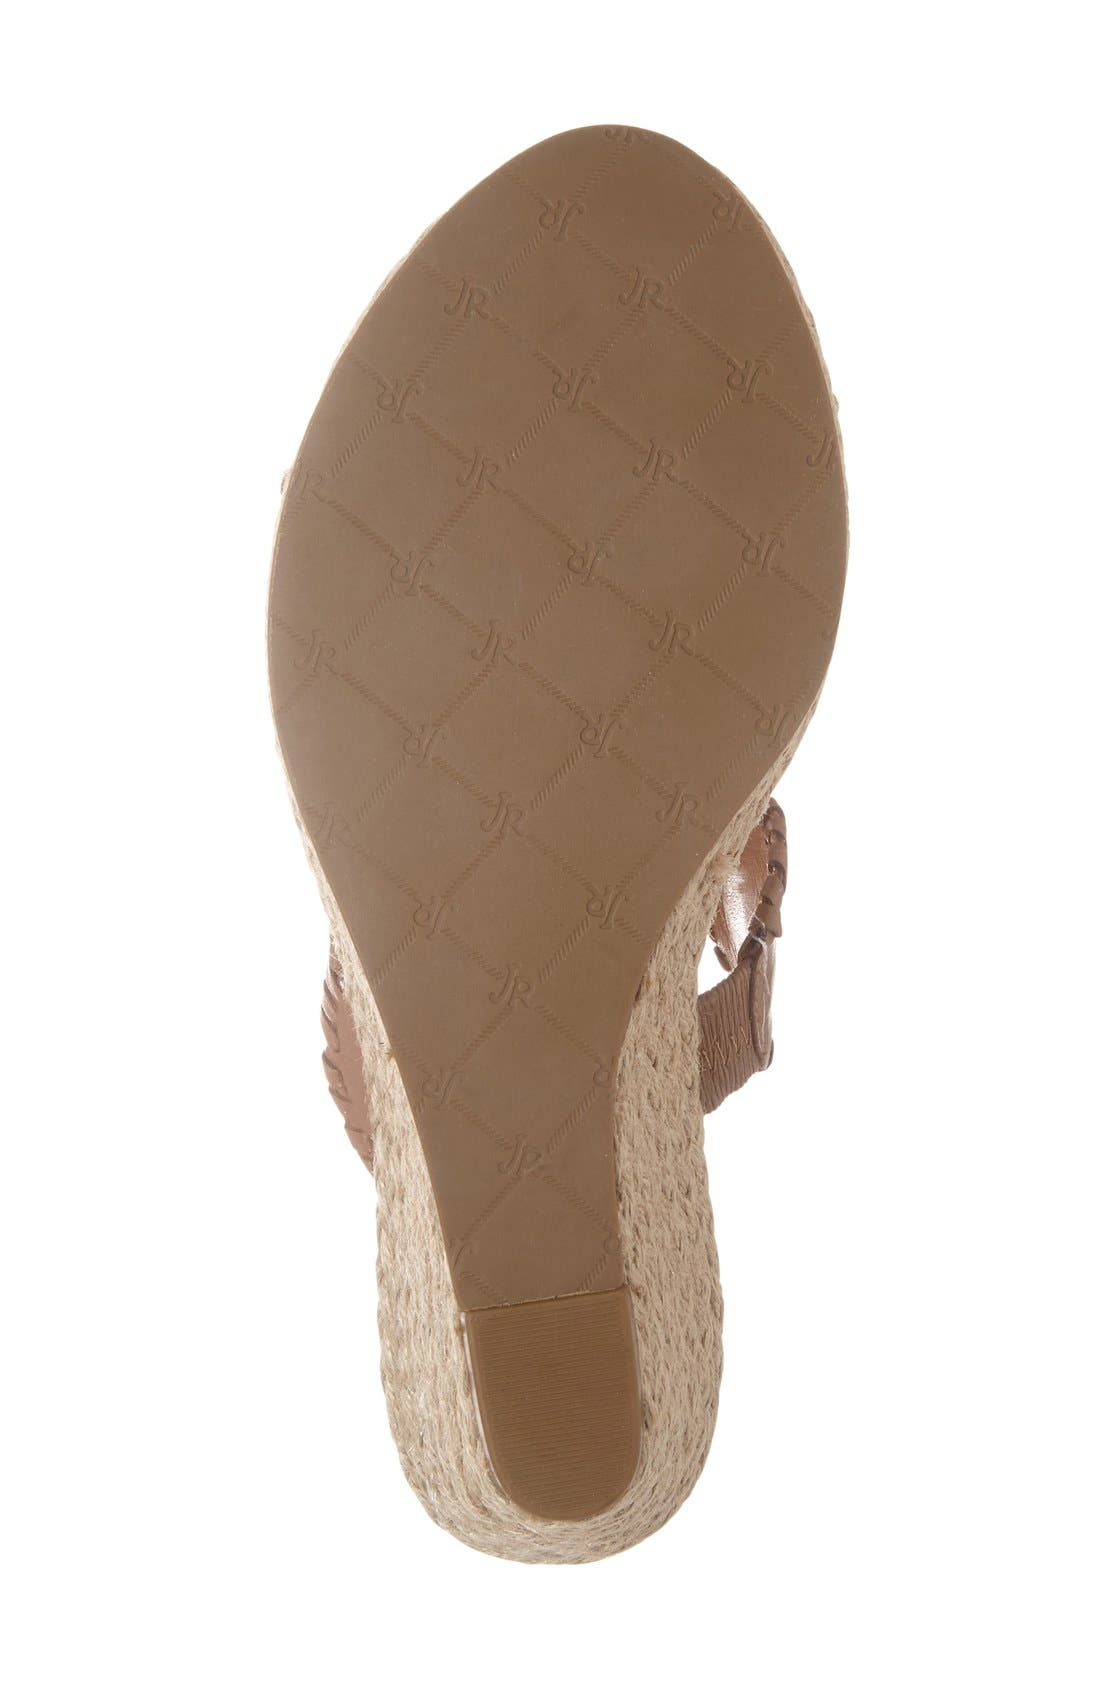 'Shelby' Whipstitched Wedge Sandal,                             Alternate thumbnail 4, color,                             COGNAC